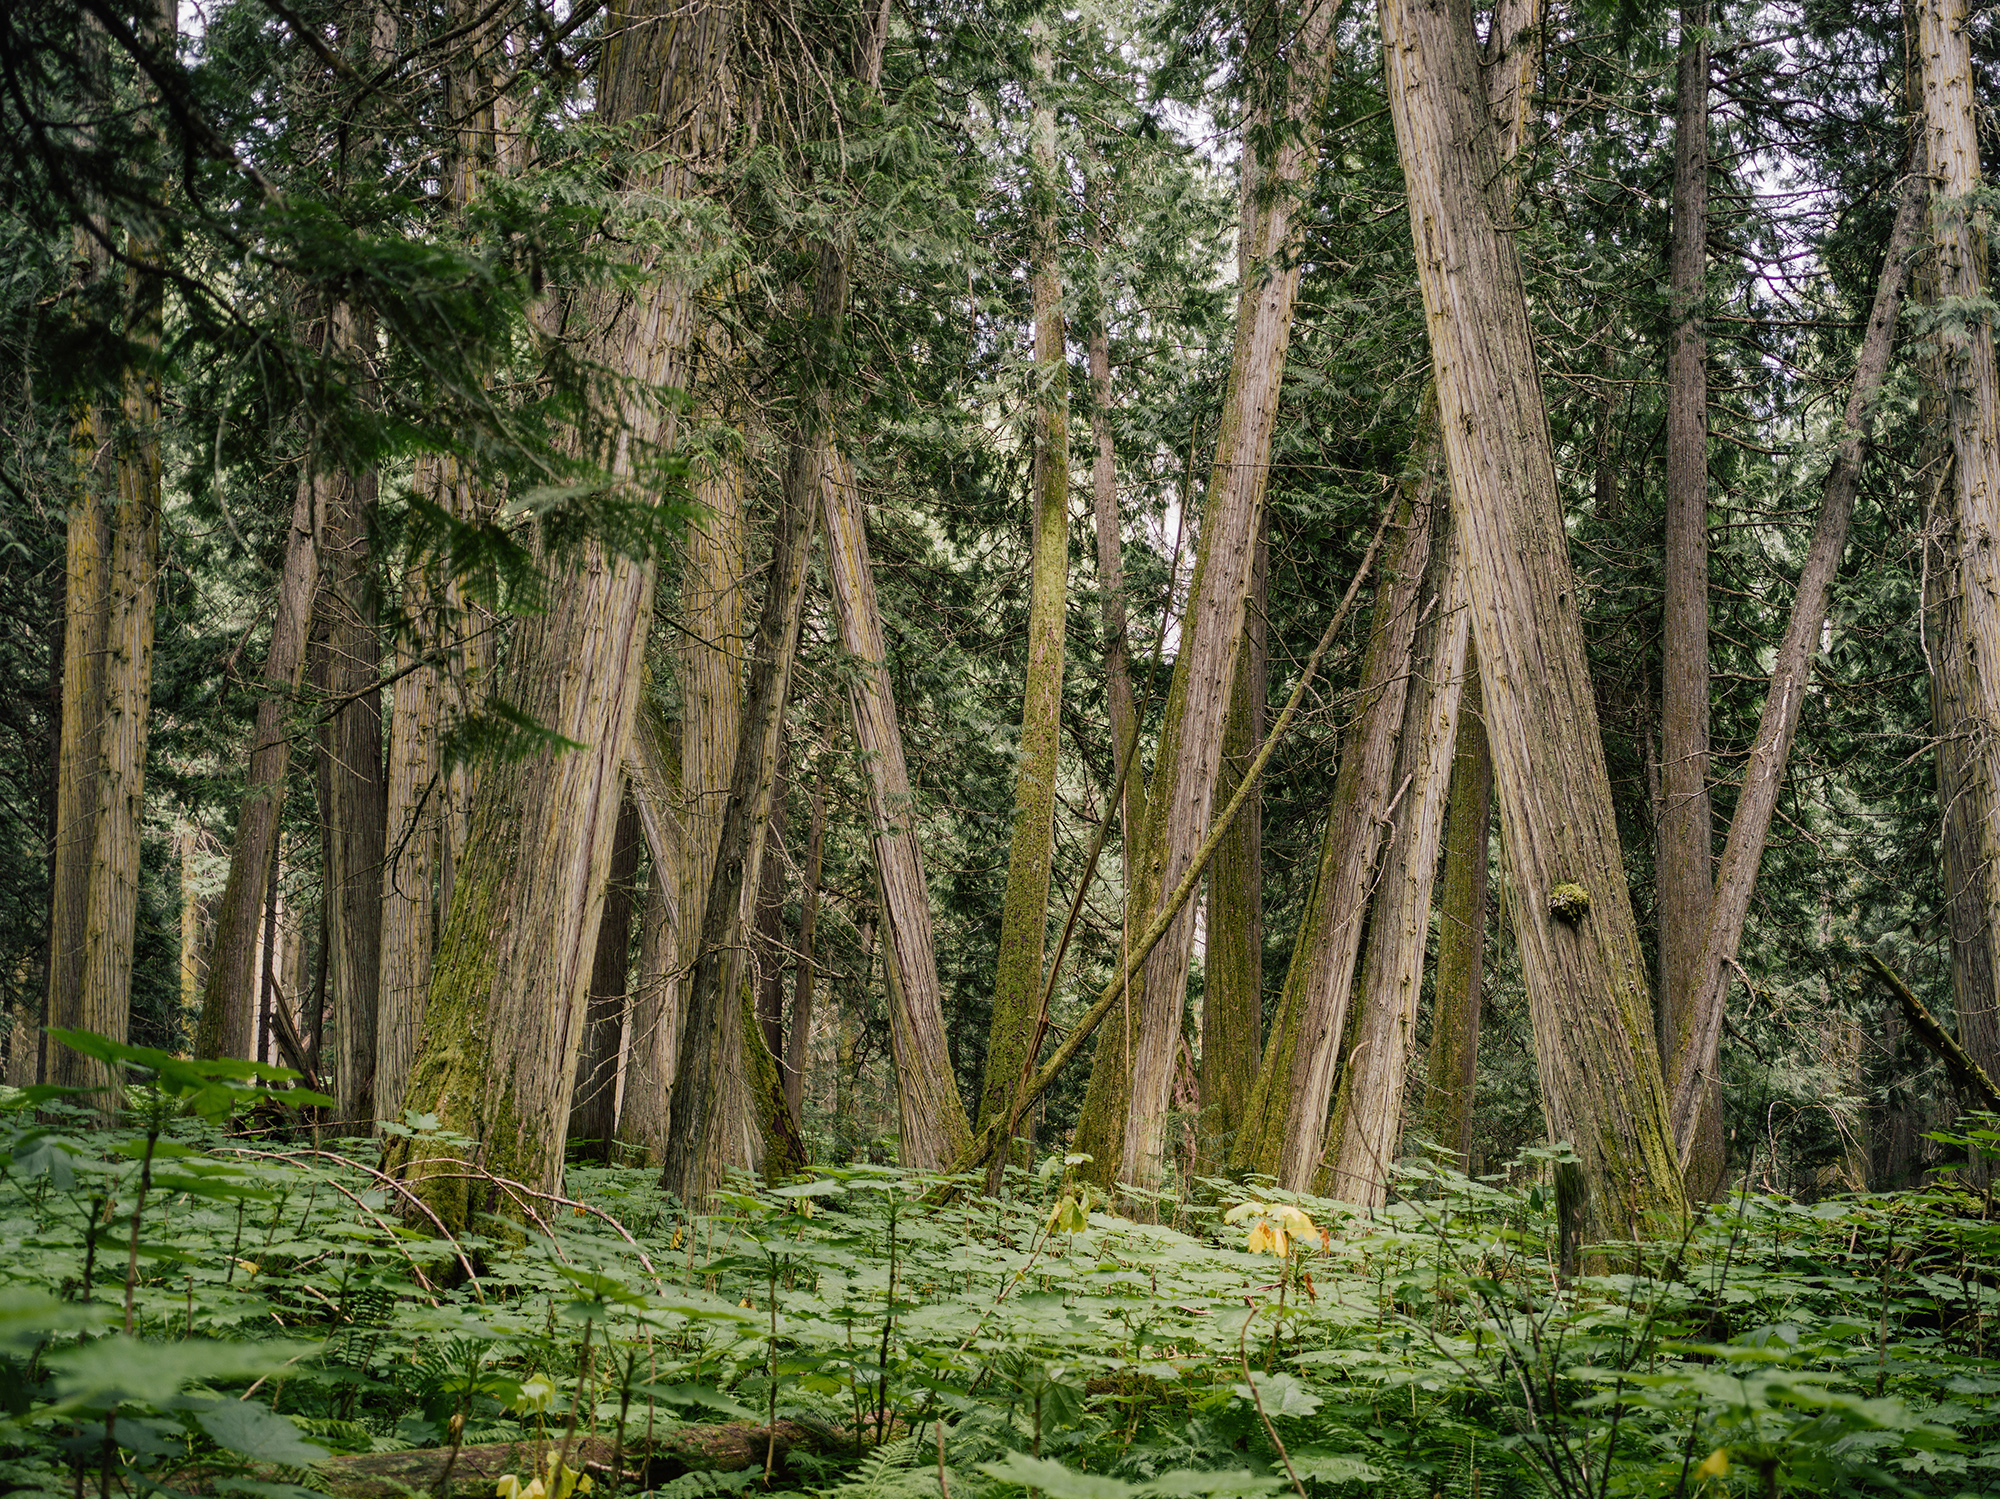 A grove of ancient cedar trees in B.C.'s rare inland temperate rainforest. Some cedars in this globally unique forest are estimated to be more than 1,500 years old. What little remains of the unprotected rainforest is now slated to be clear-cut.